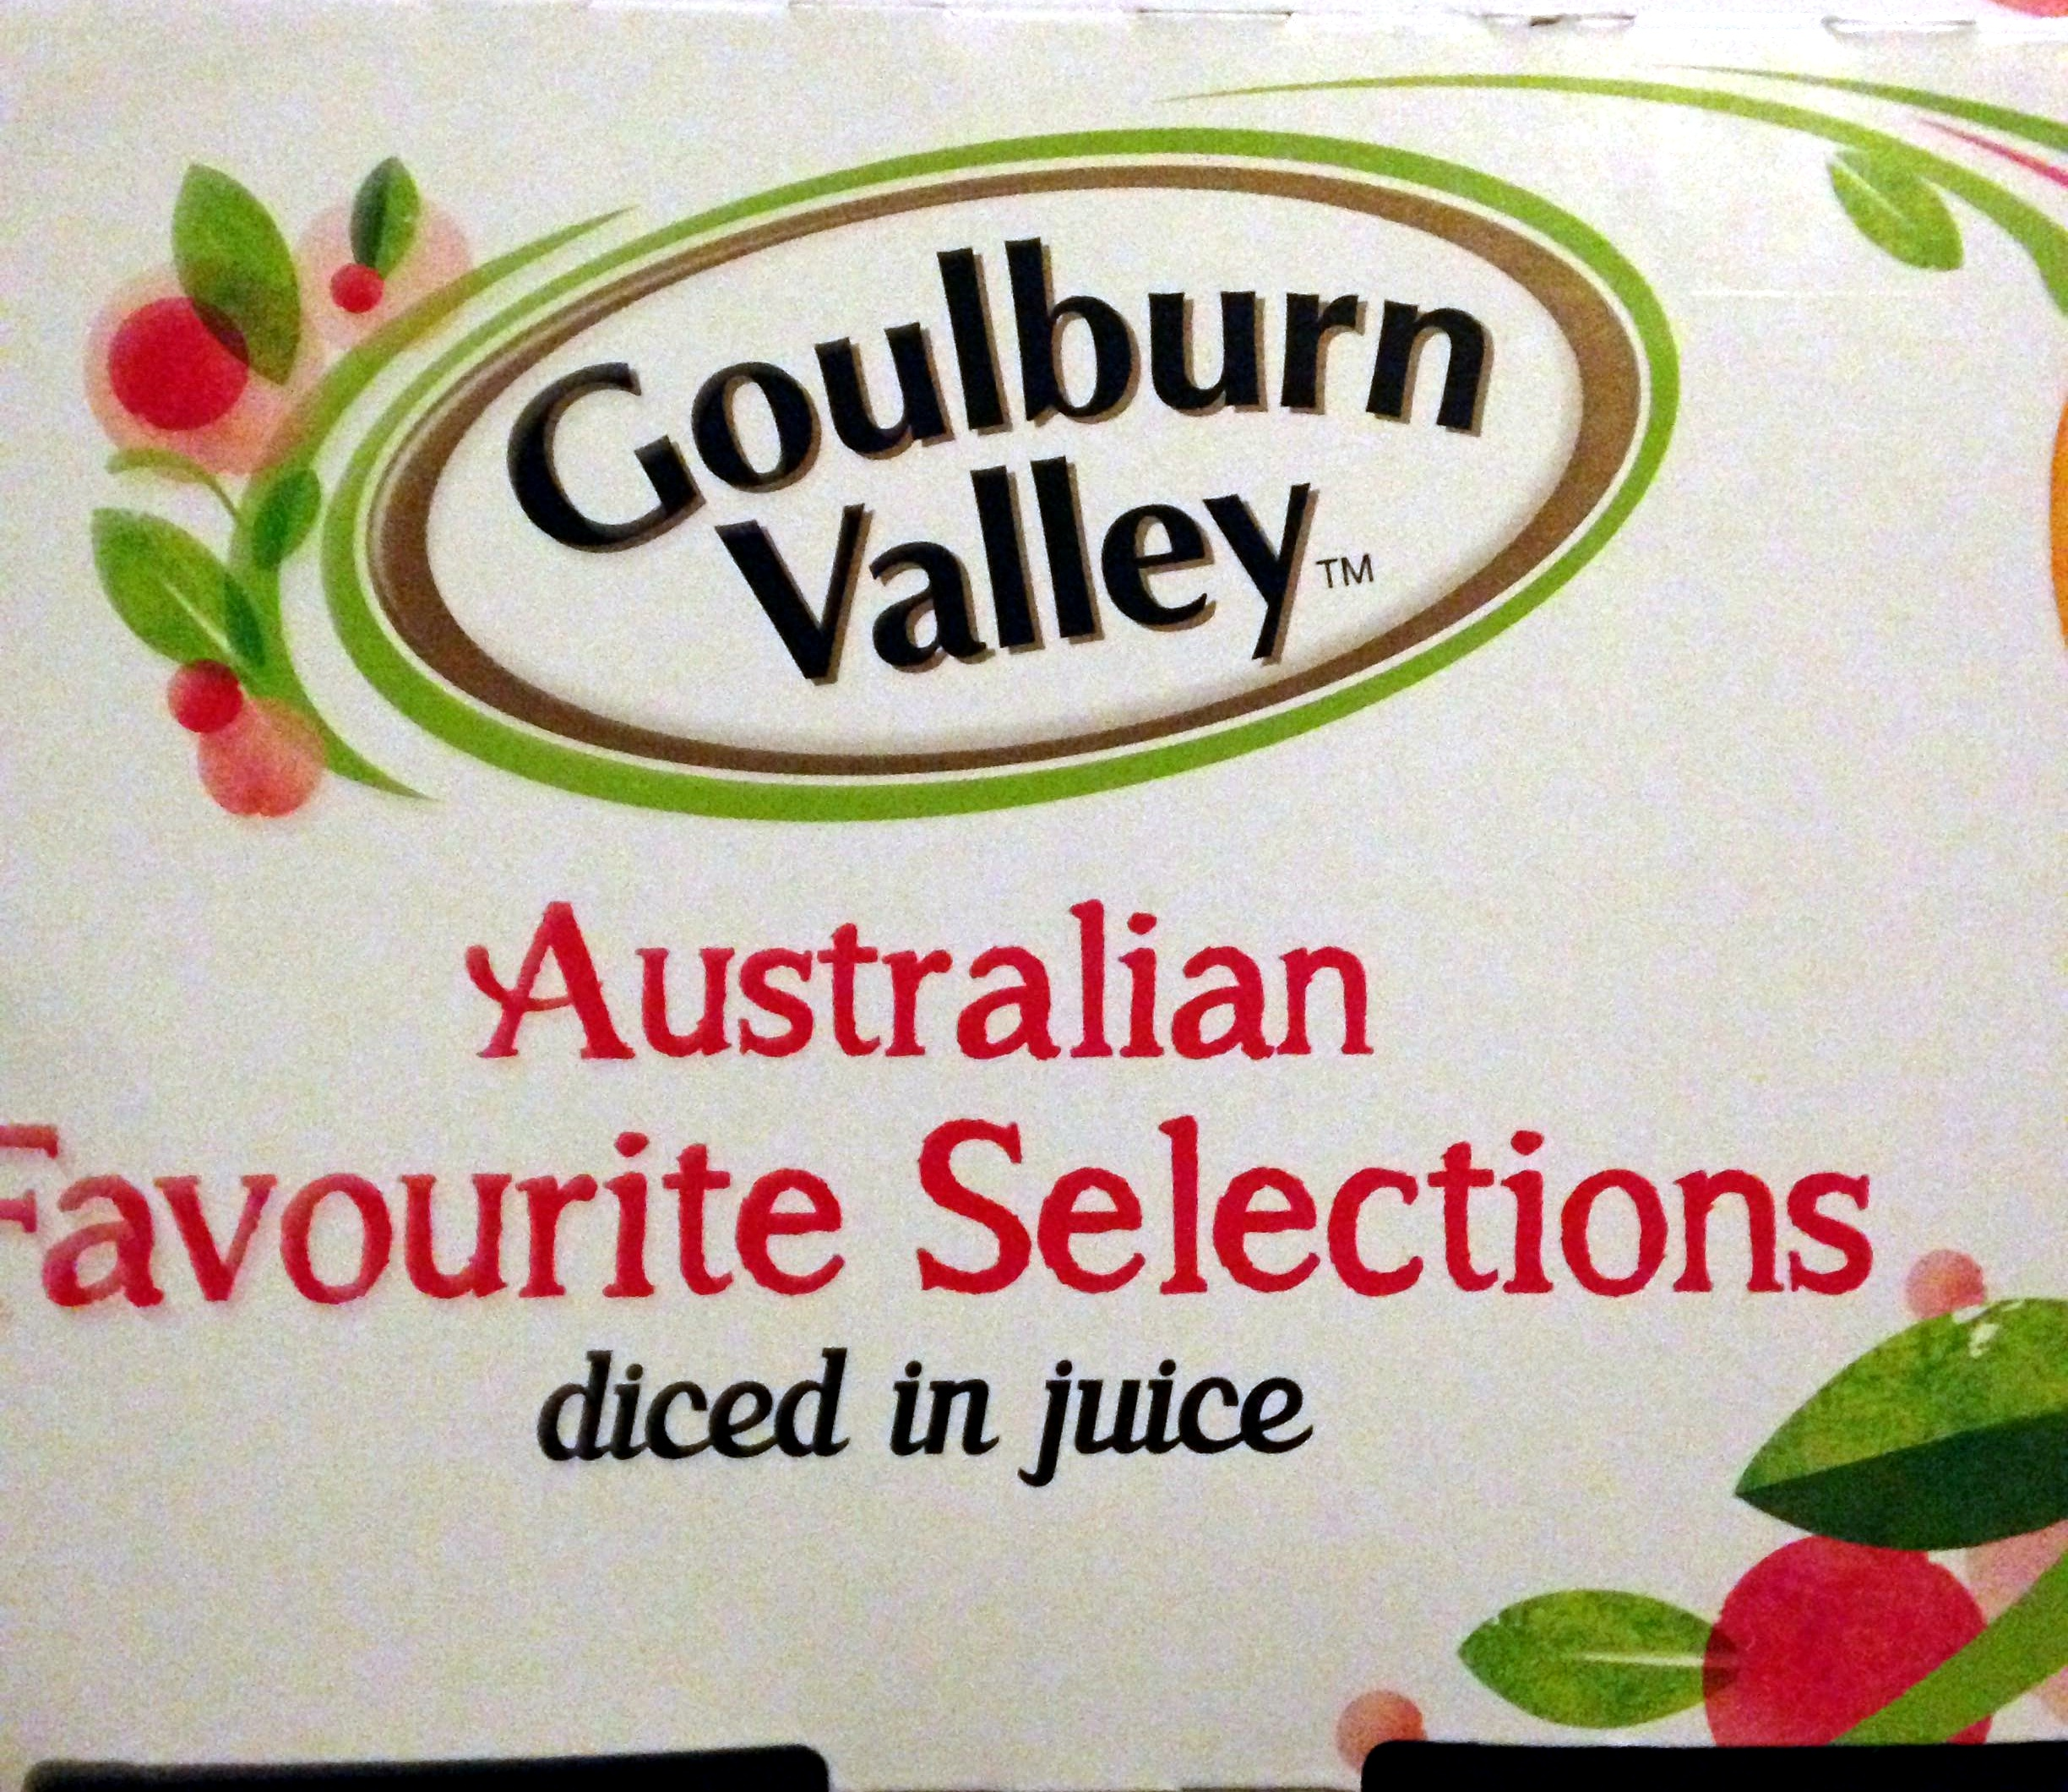 Australian favourite selections diced in juice - Product - en